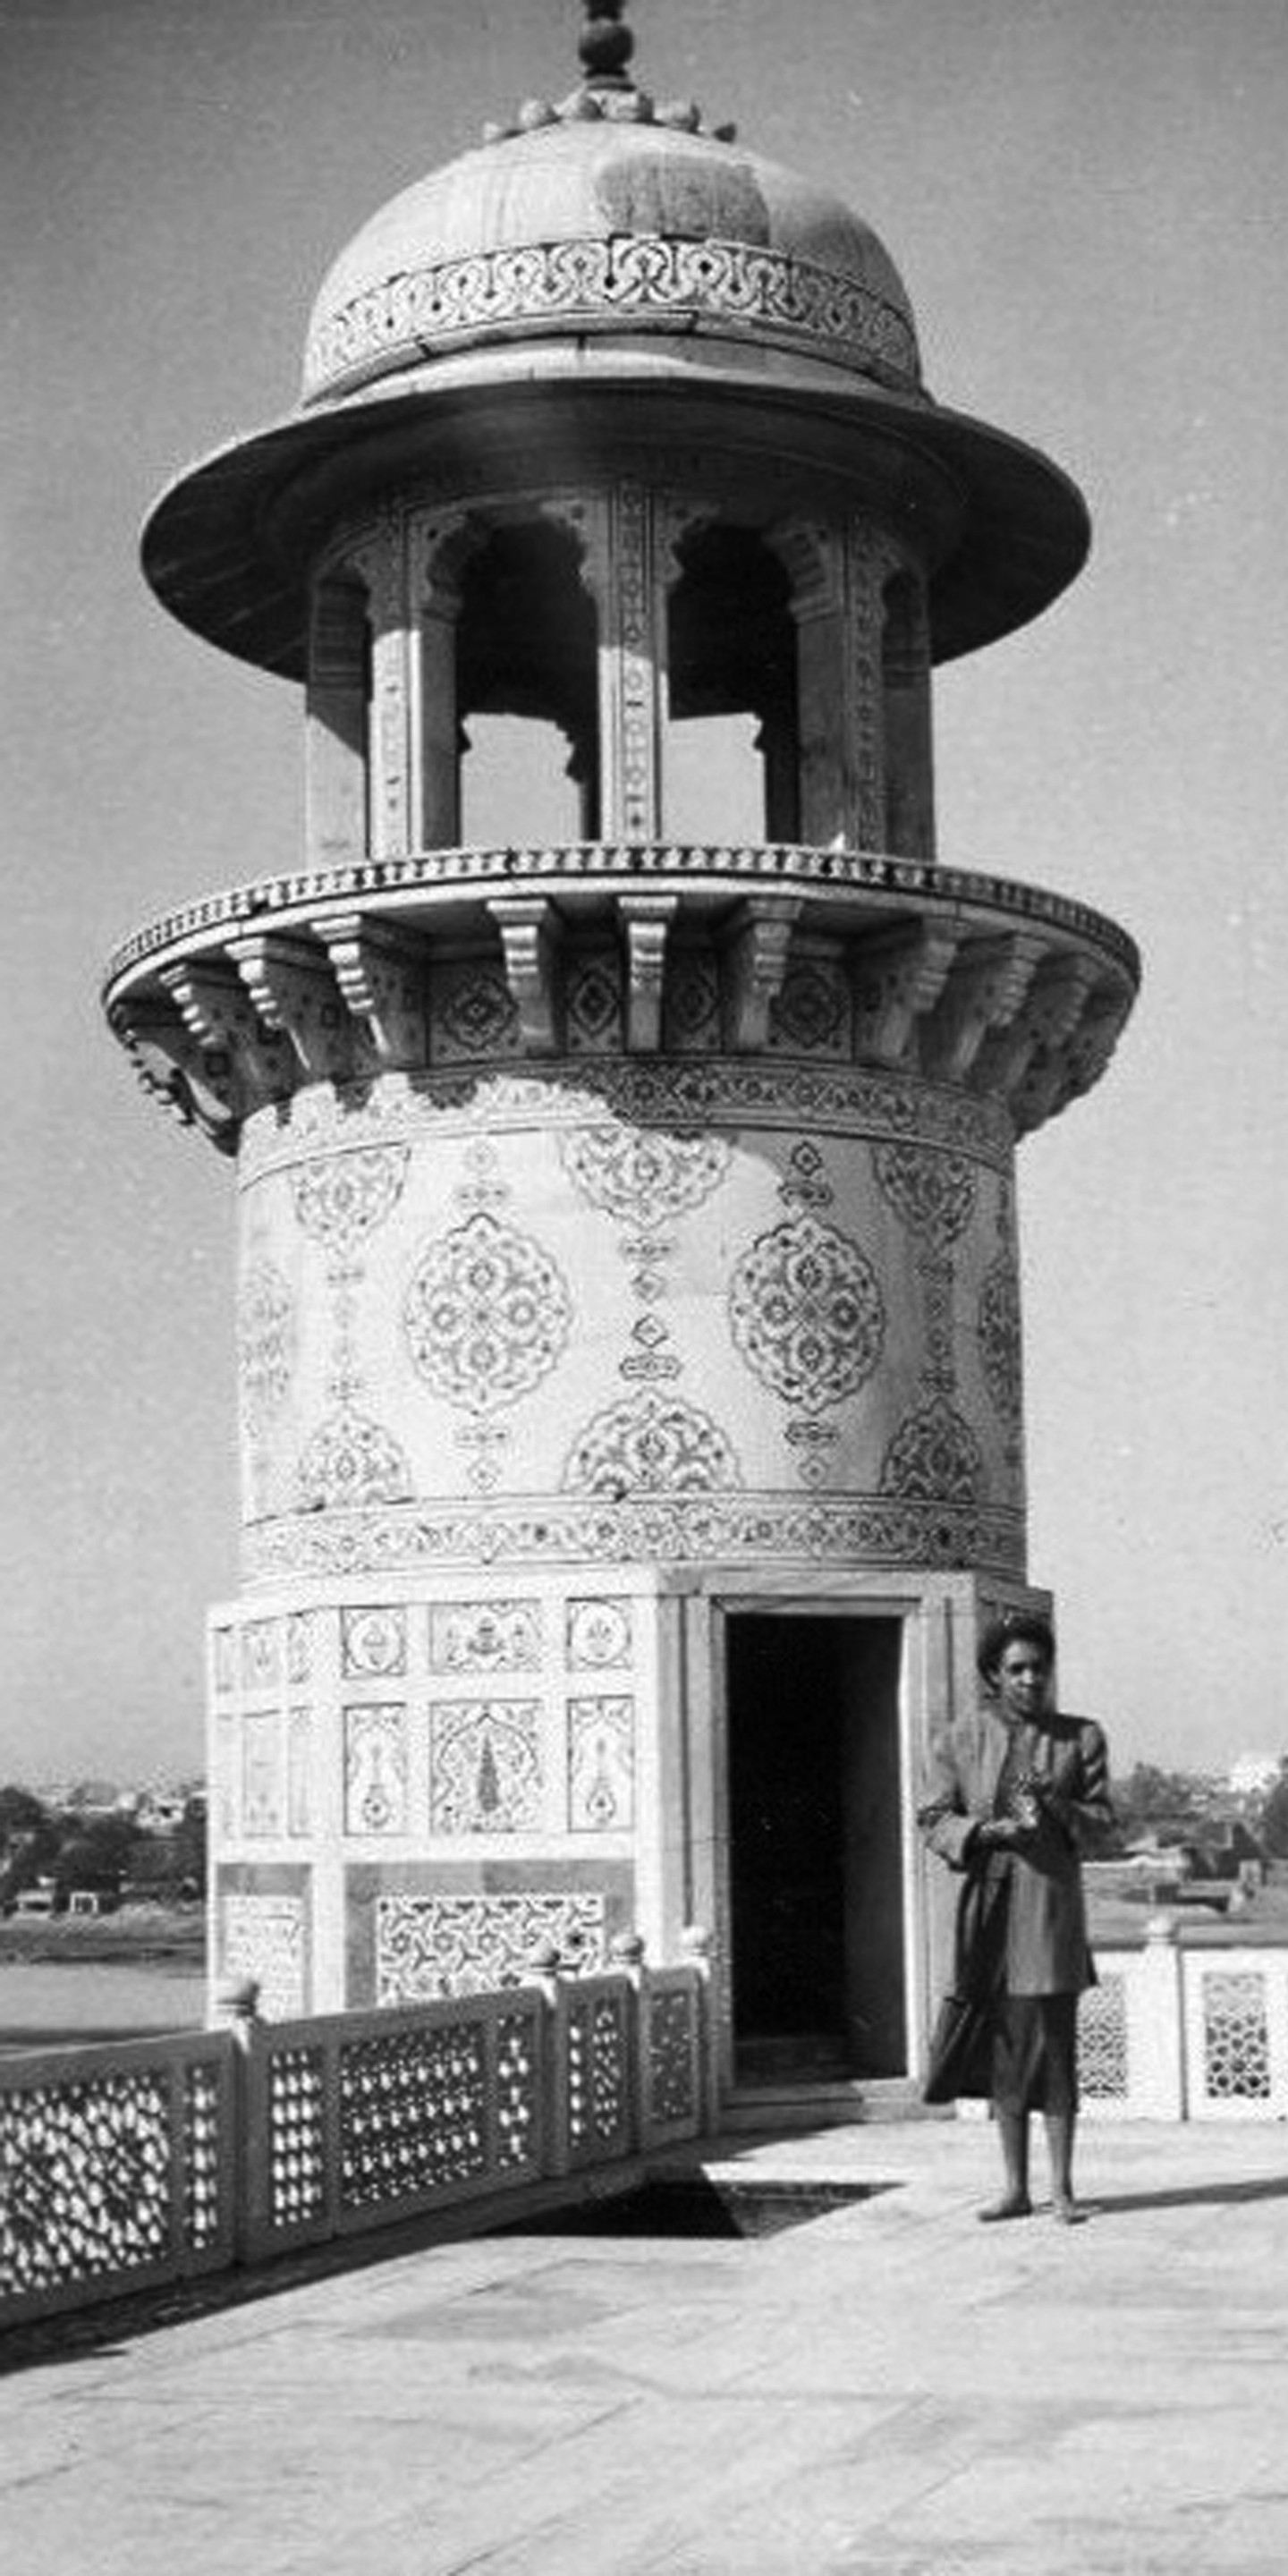 Merze Tate poses next to a tower.